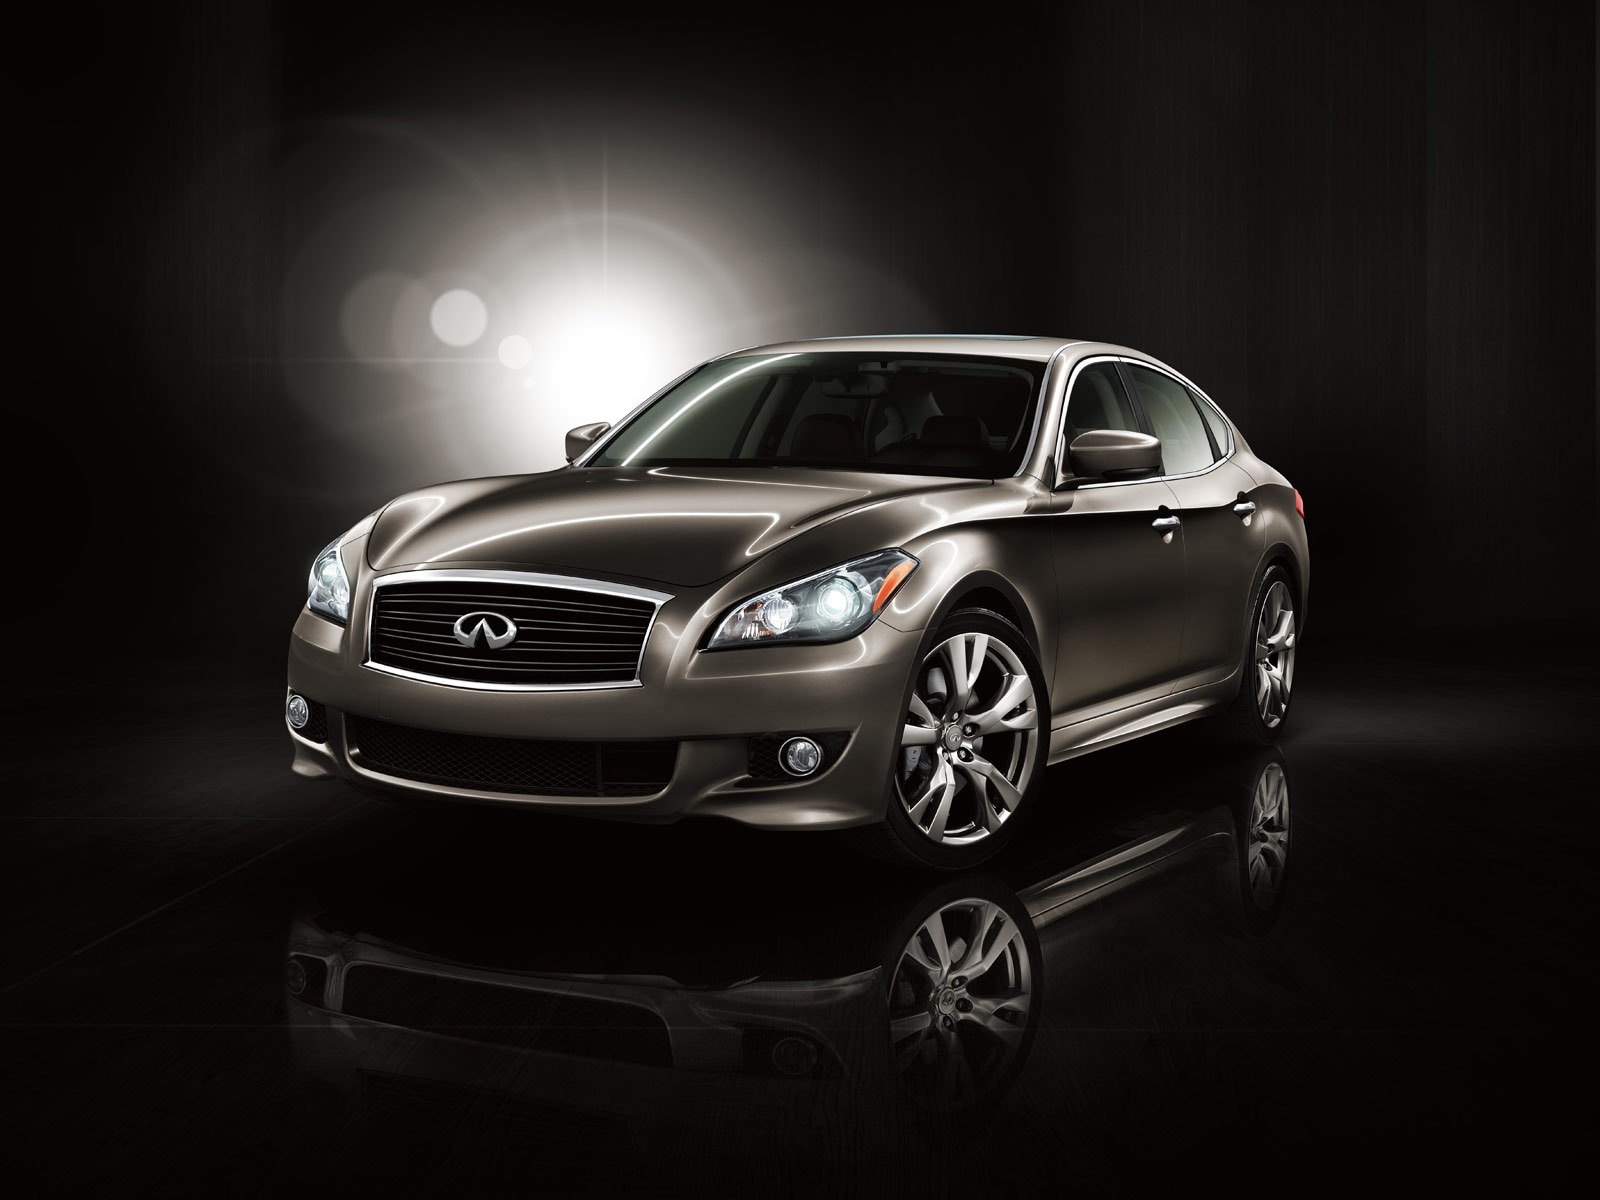 Infiniti M Wallpaper Infiniti Cars Wallpapers In Jpg Format For Free Download